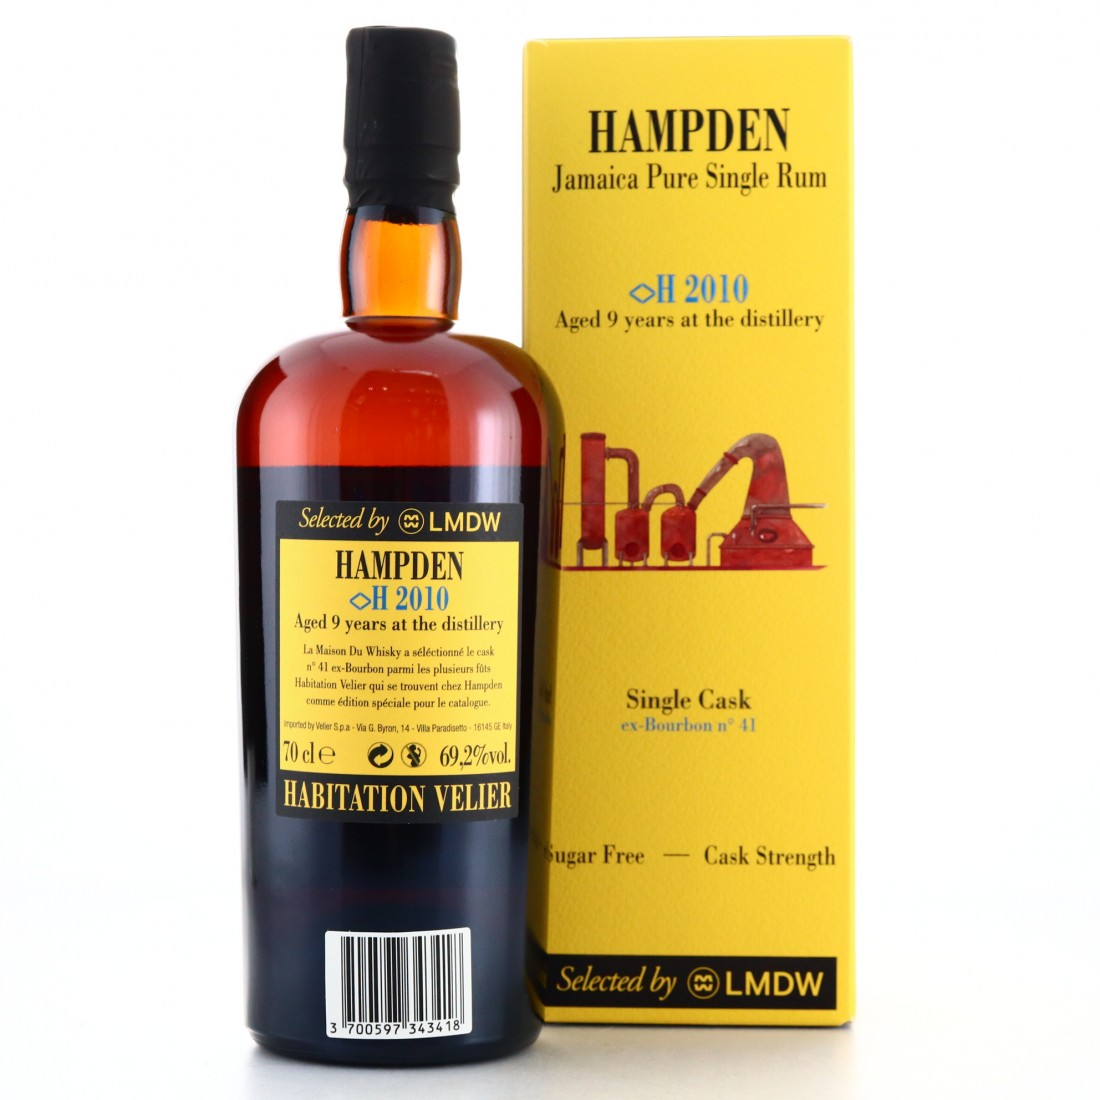 Hampden <H> 2010 Habitation Velier 9 Year Old Single Cask / LMDW